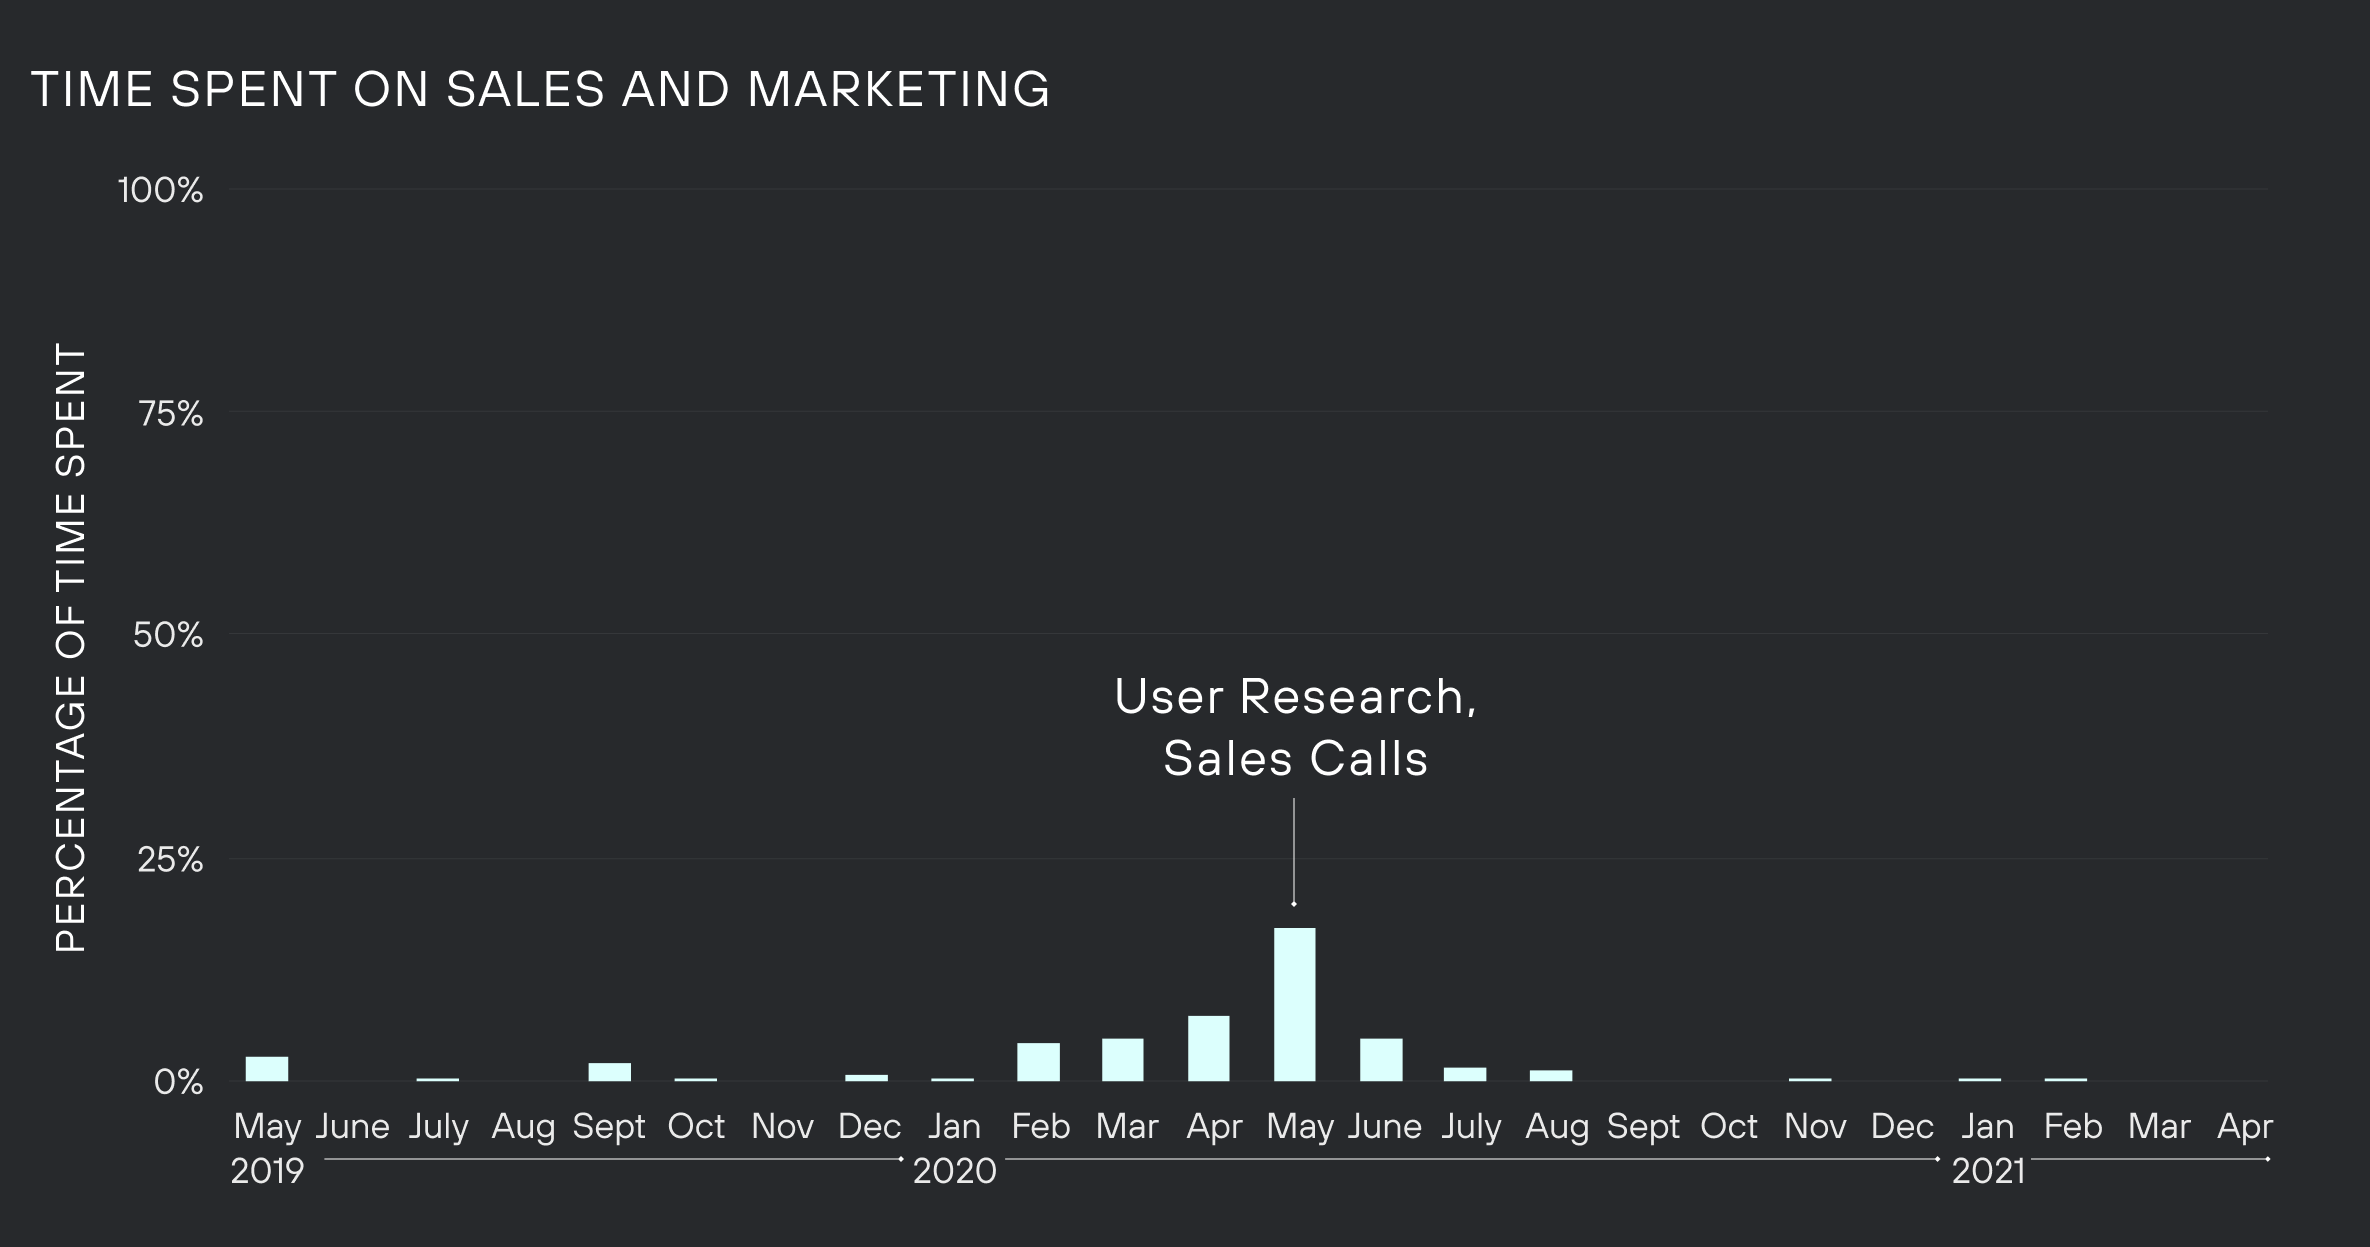 Graph of time spent on sales and marketing